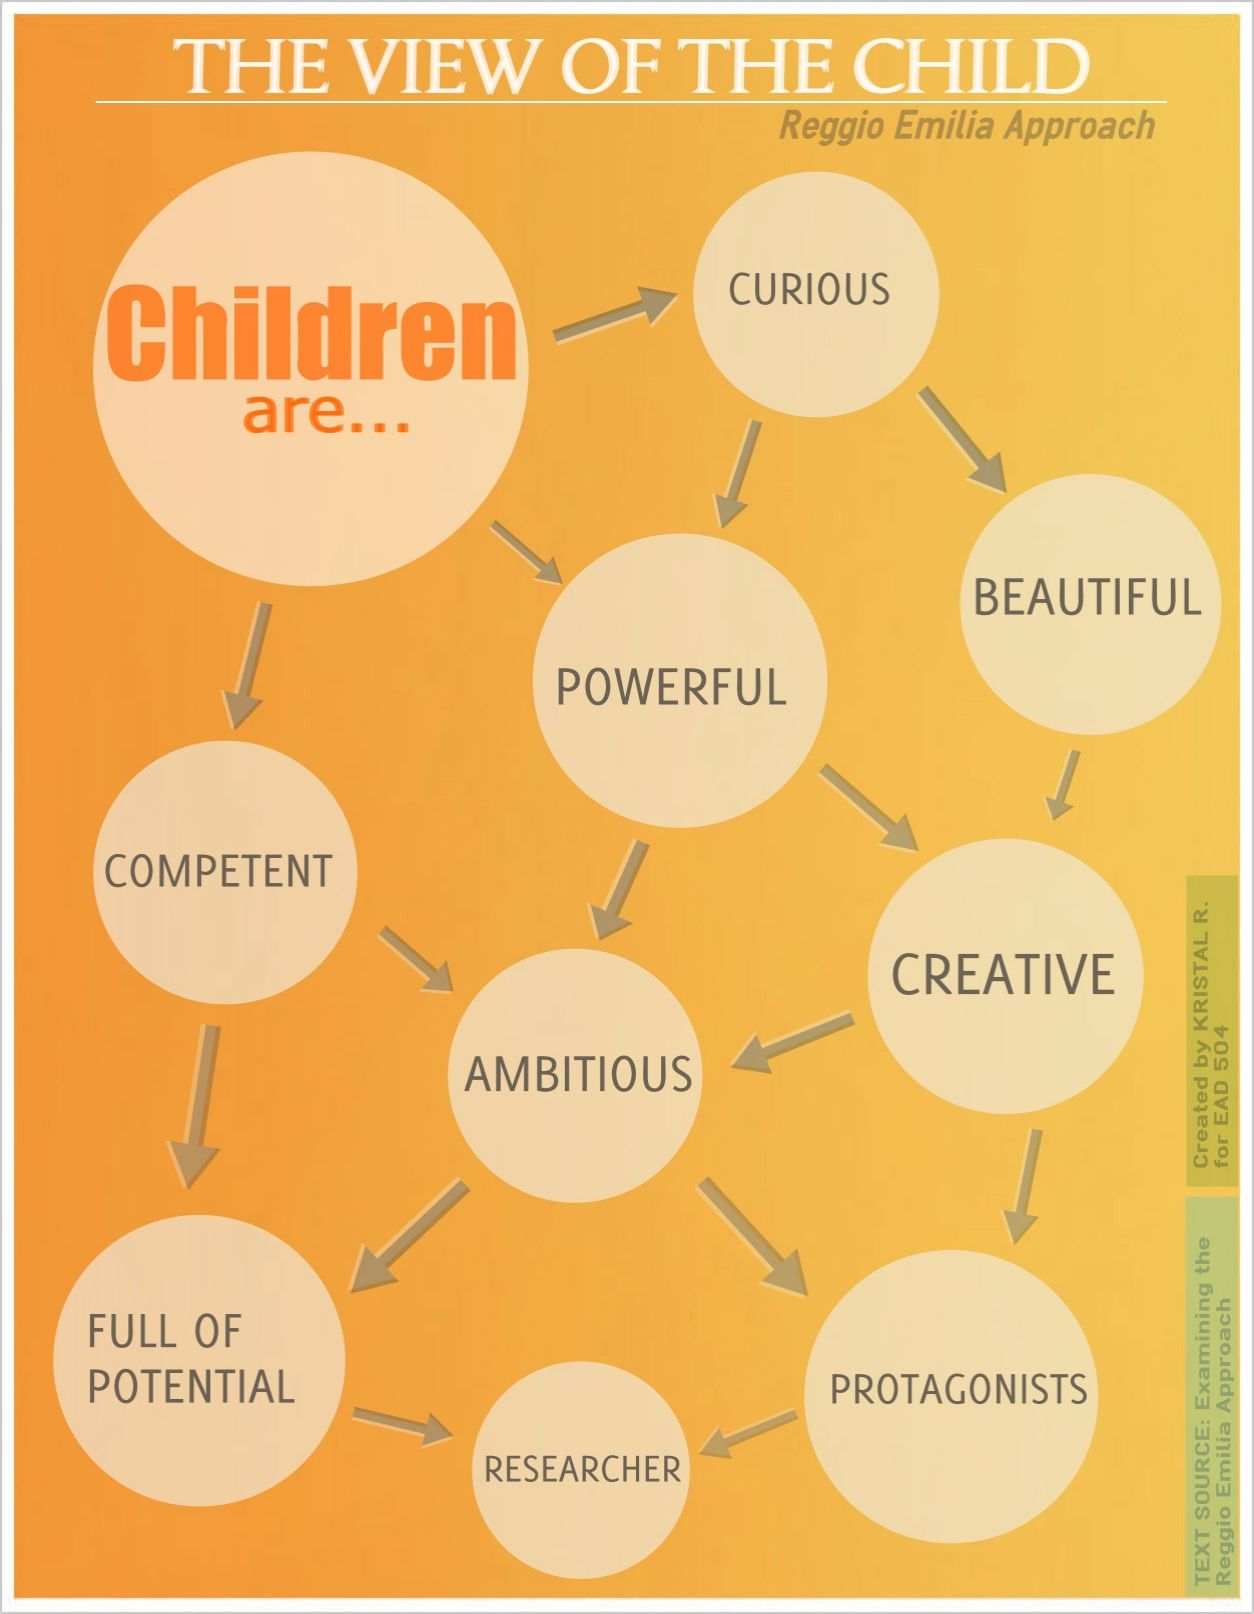 Reggio Emilia S View The Child Infographic From The Text Examining